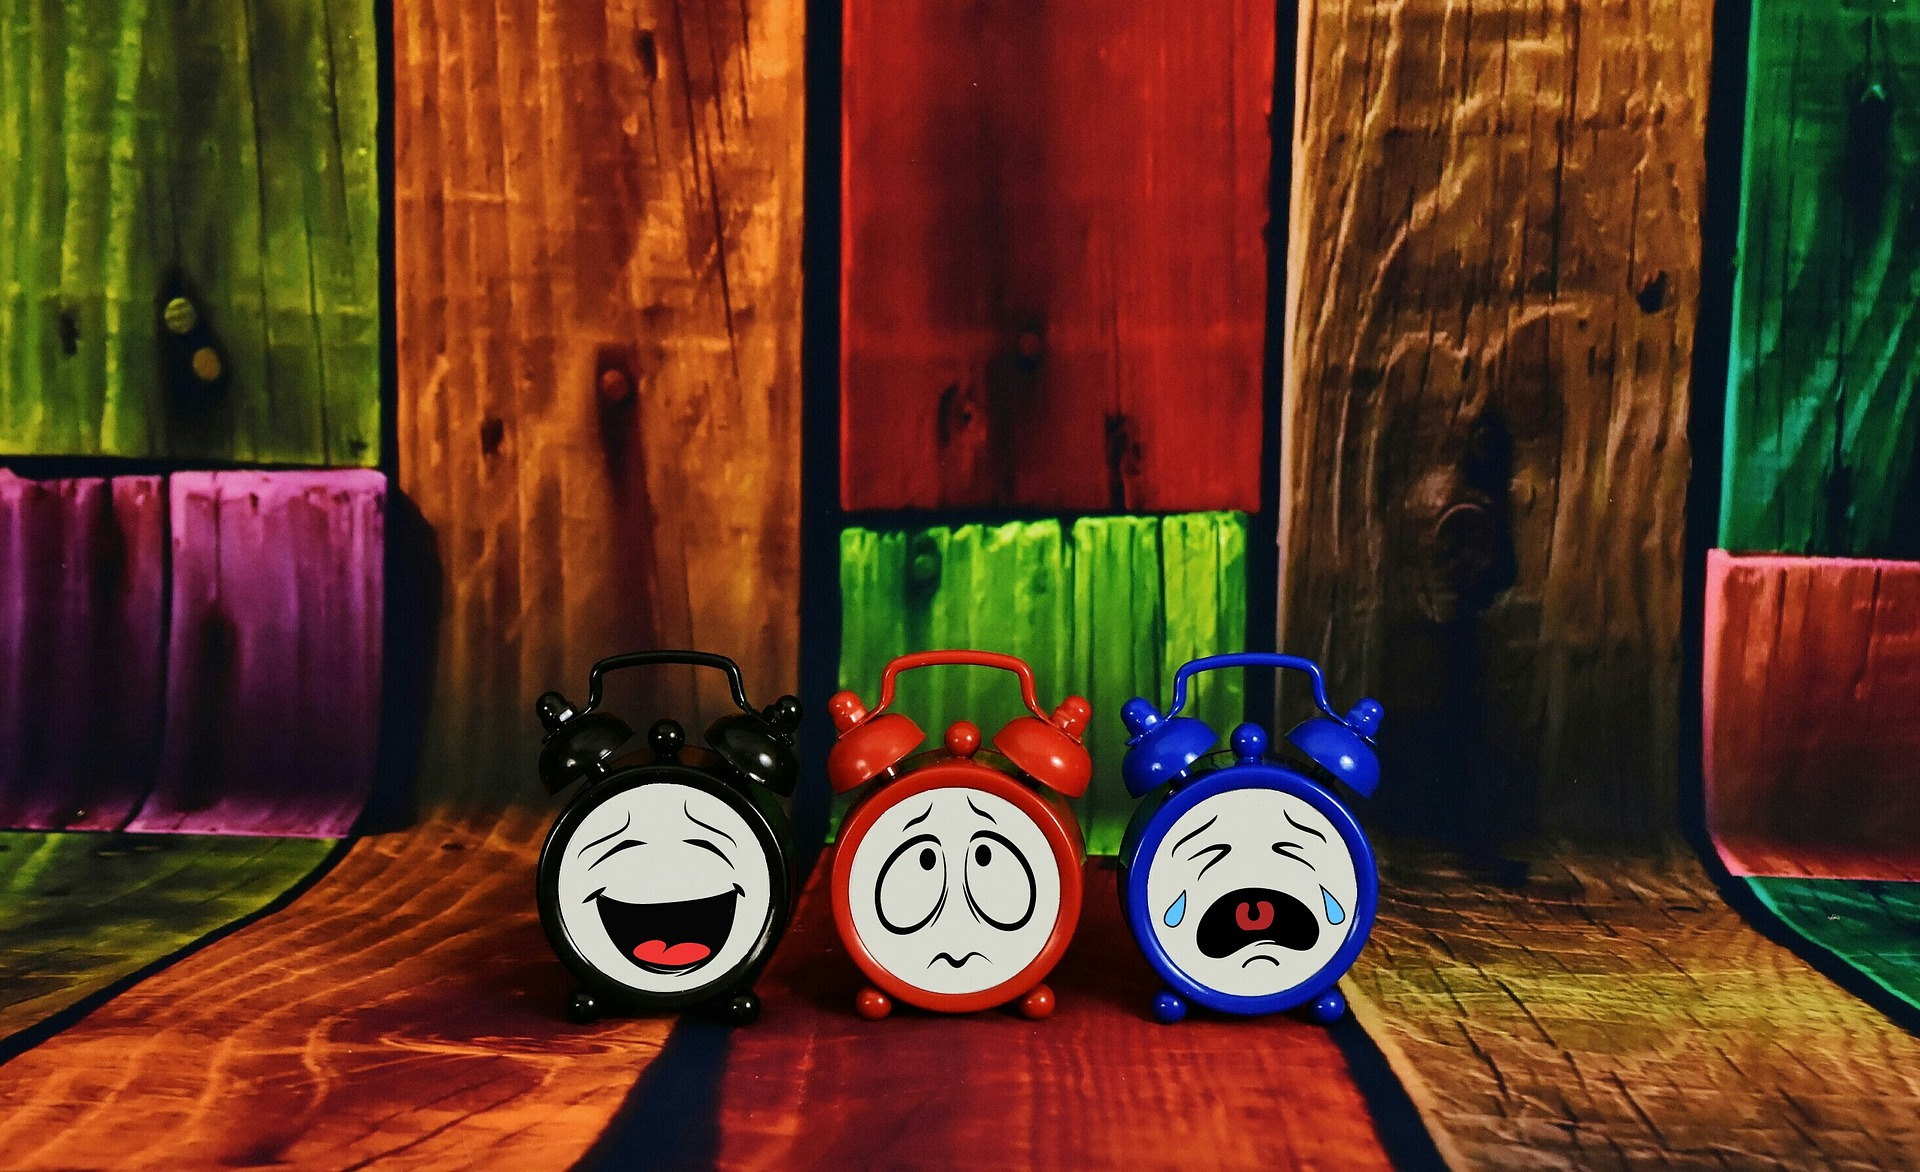 3 alarm clocks, each having different expressions